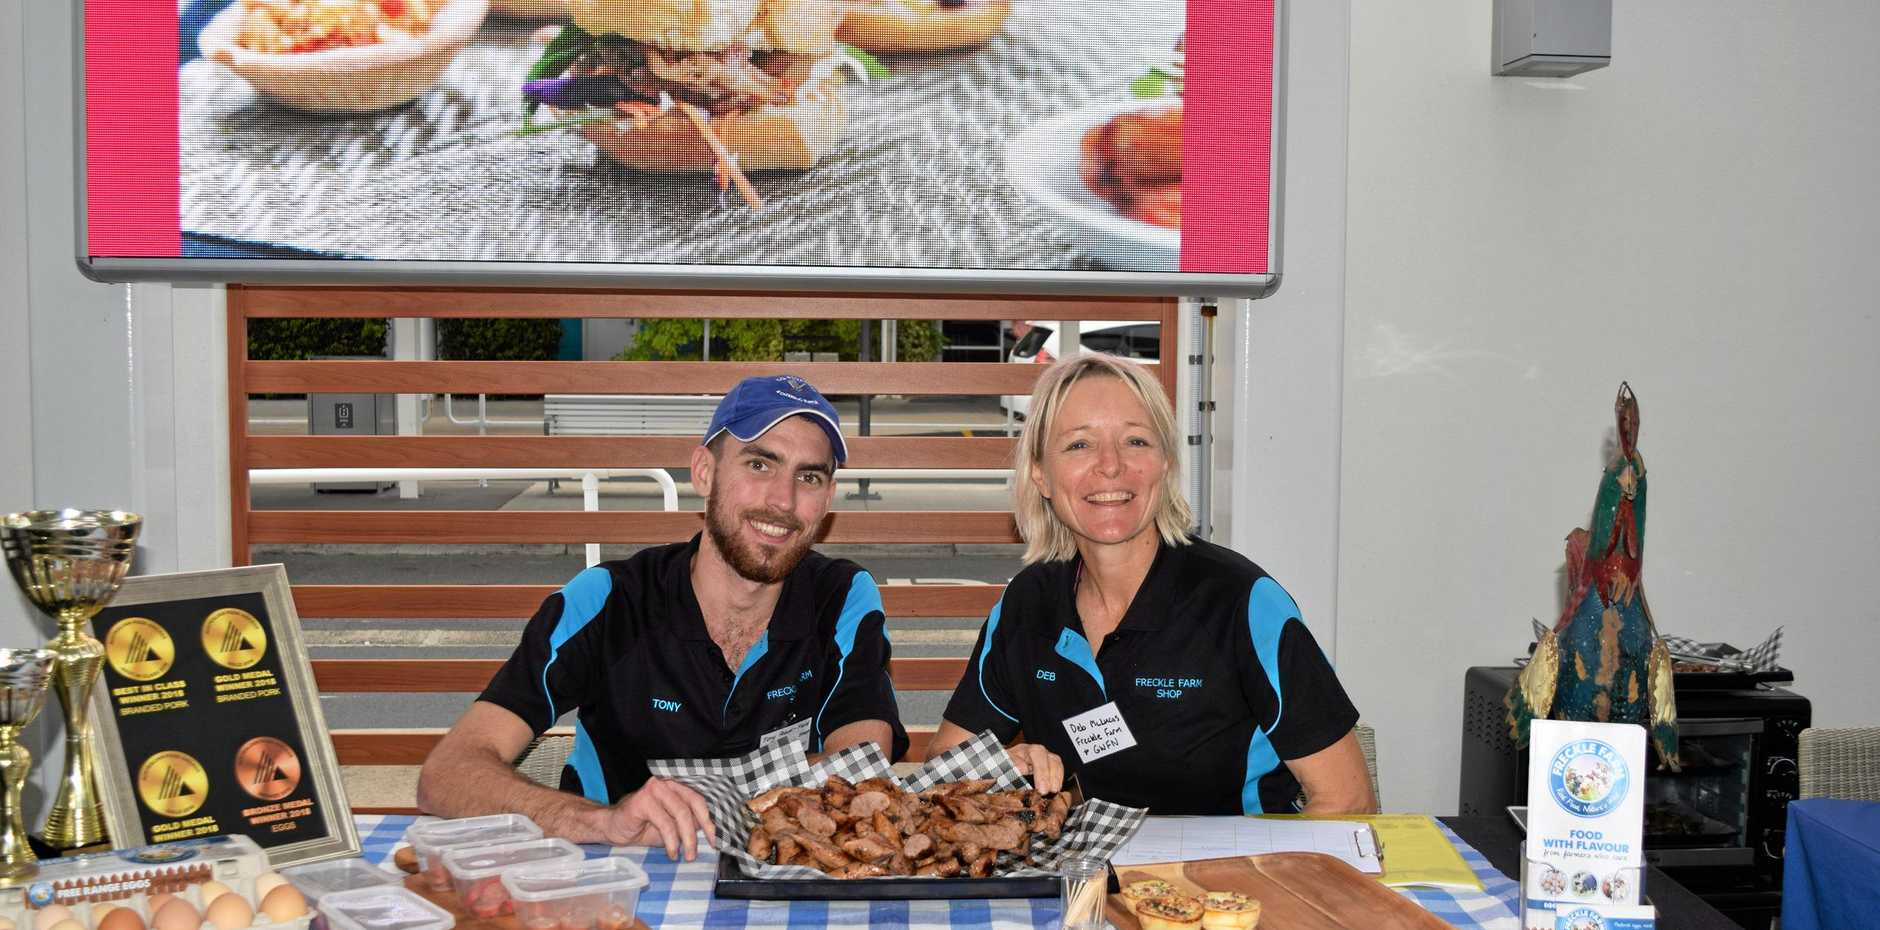 ON SHOW: Deb and Tony McLucas from Freckle Farm were excited to meet food sellers in the region.